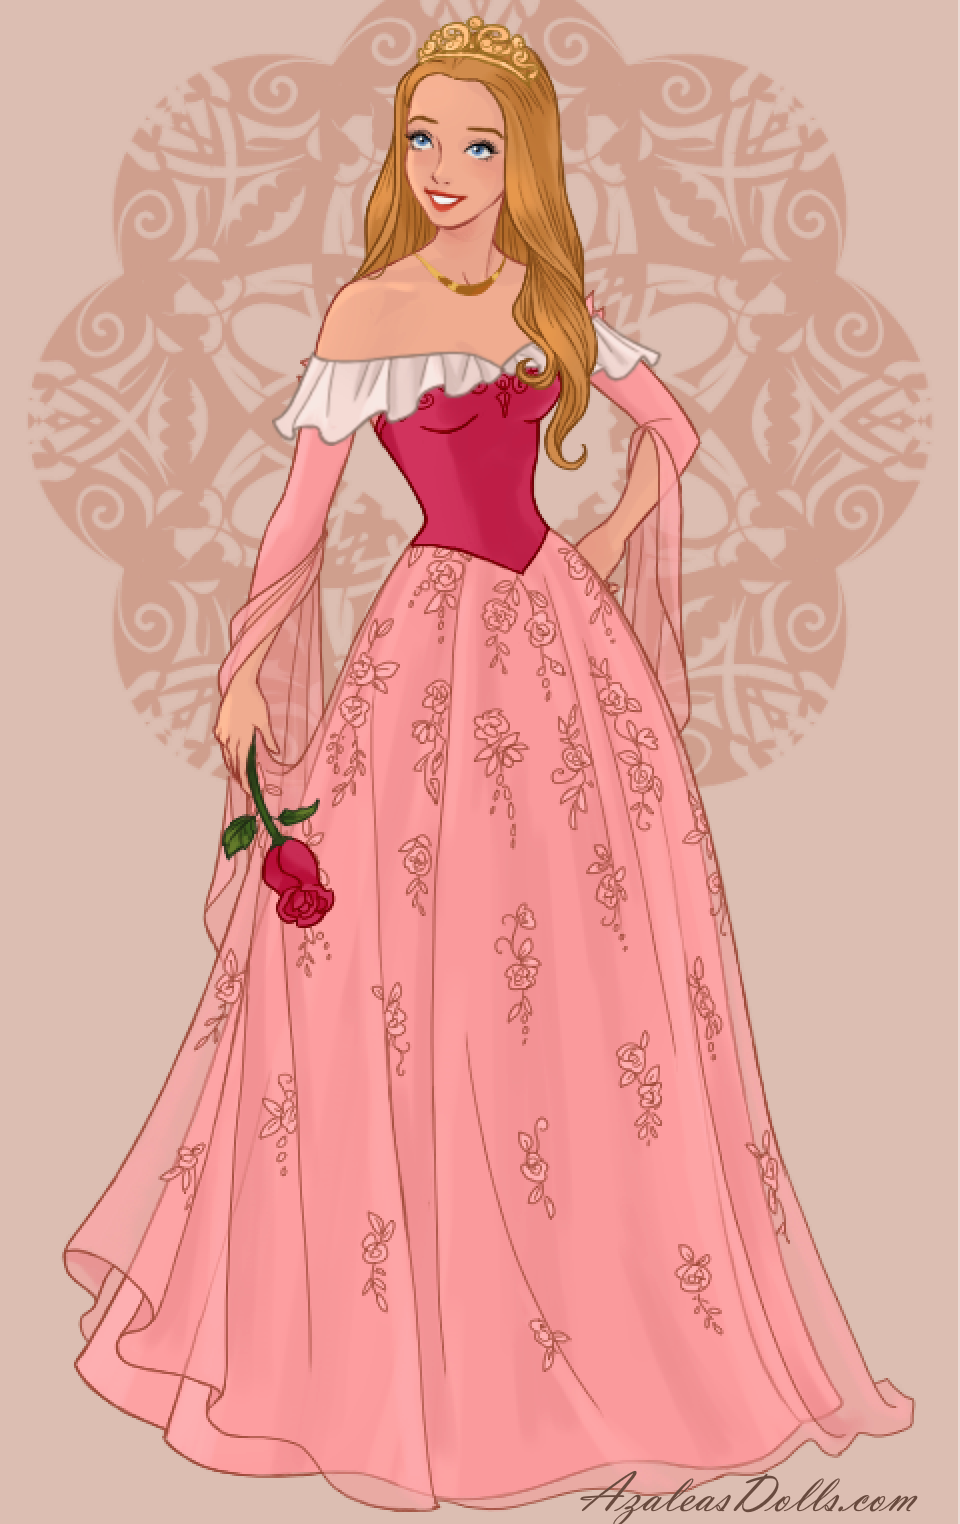 Princess Aurora The Sleeping Beauty In Pink In Wedding Dress Design Dress Up Game Disney Princess Dresses Disney Princess Fashion Sleeping Beauty Dress